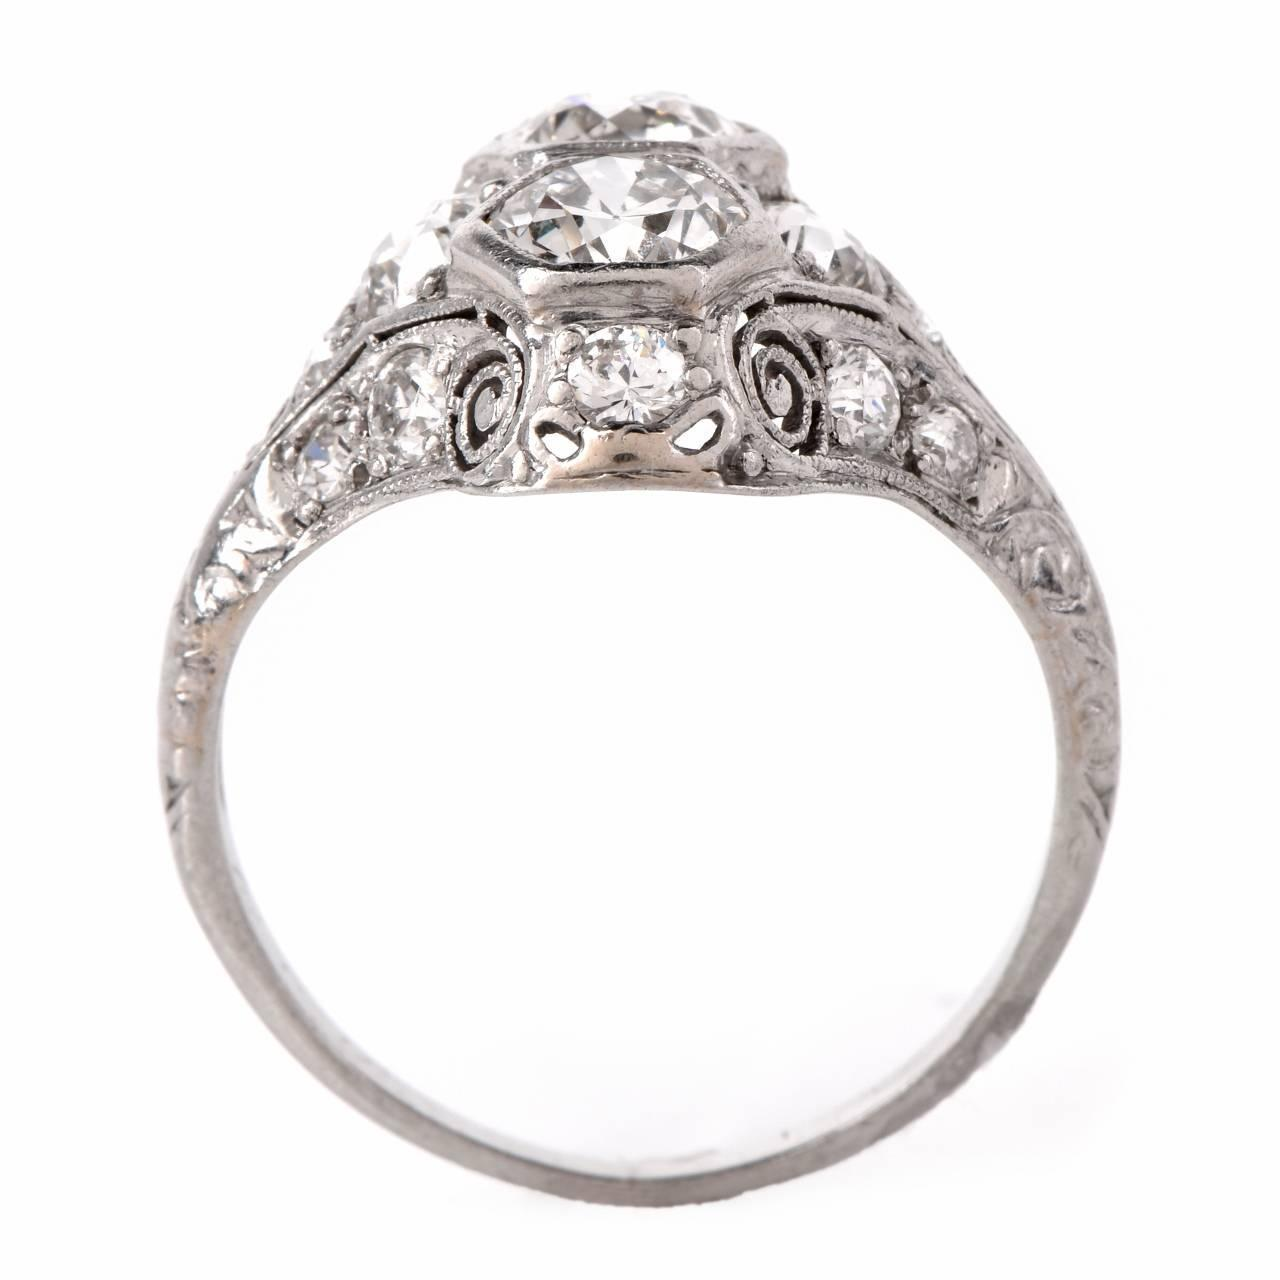 Antique Art Deco Diamond Platinum Filigree Engagement Ring at 1stdibs